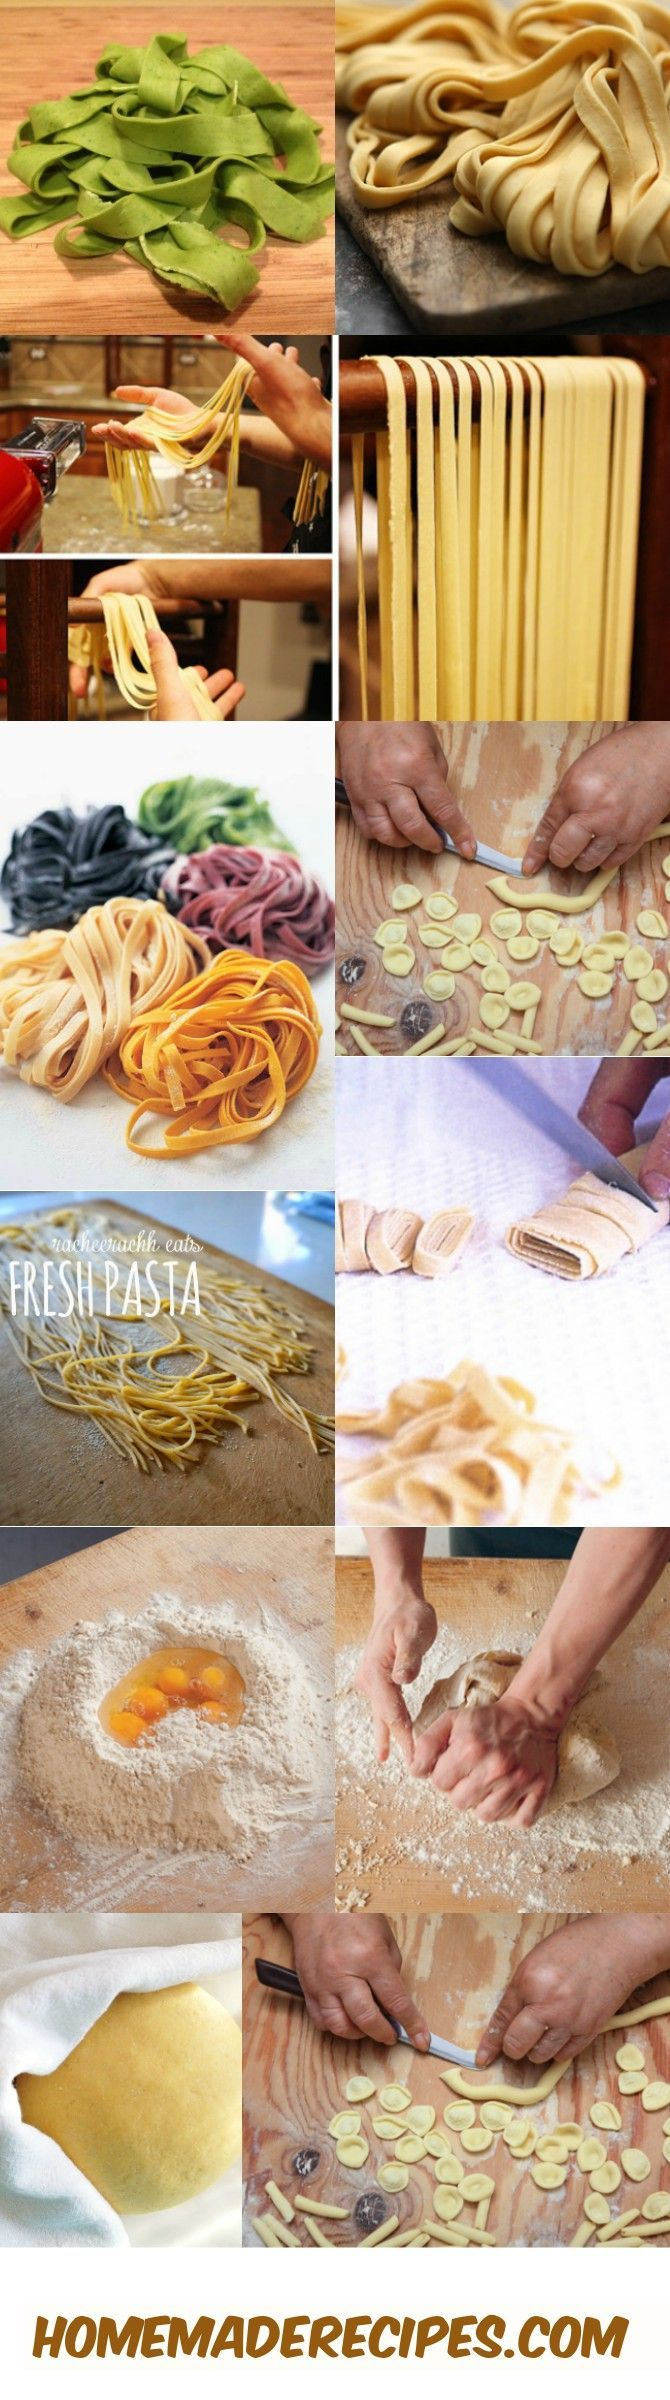 How To Pasta From Scratch | 15 Homemade Pasta Recipes, see more at http://homemaderecipes.com